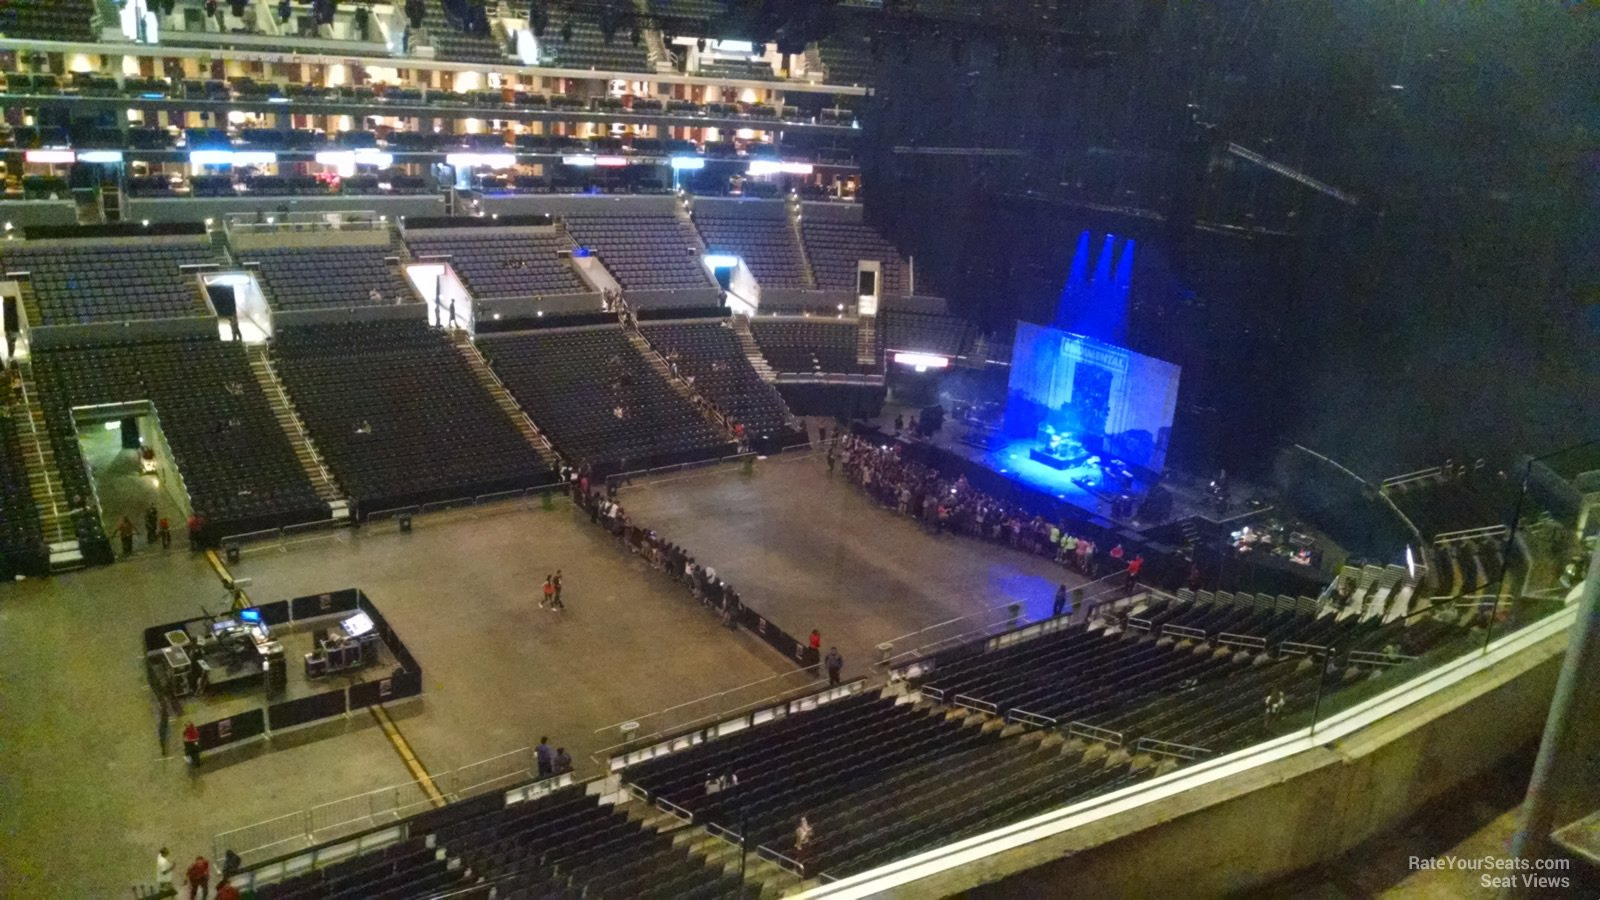 staples center section 303 concert seating - rateyourseats